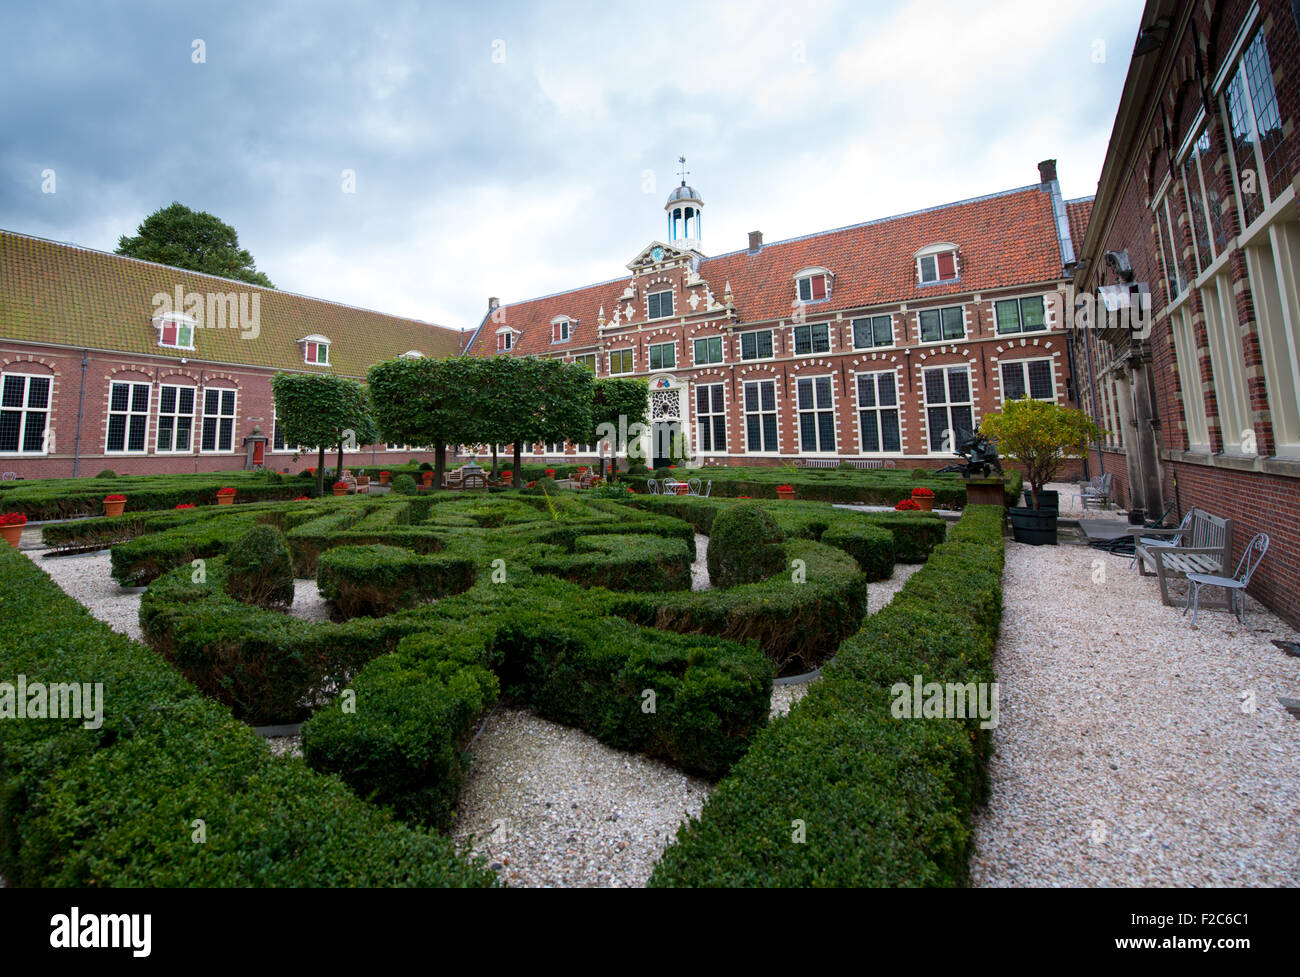 The Frans Hals Museum, in Haarlem, Netherlands Stock Photo